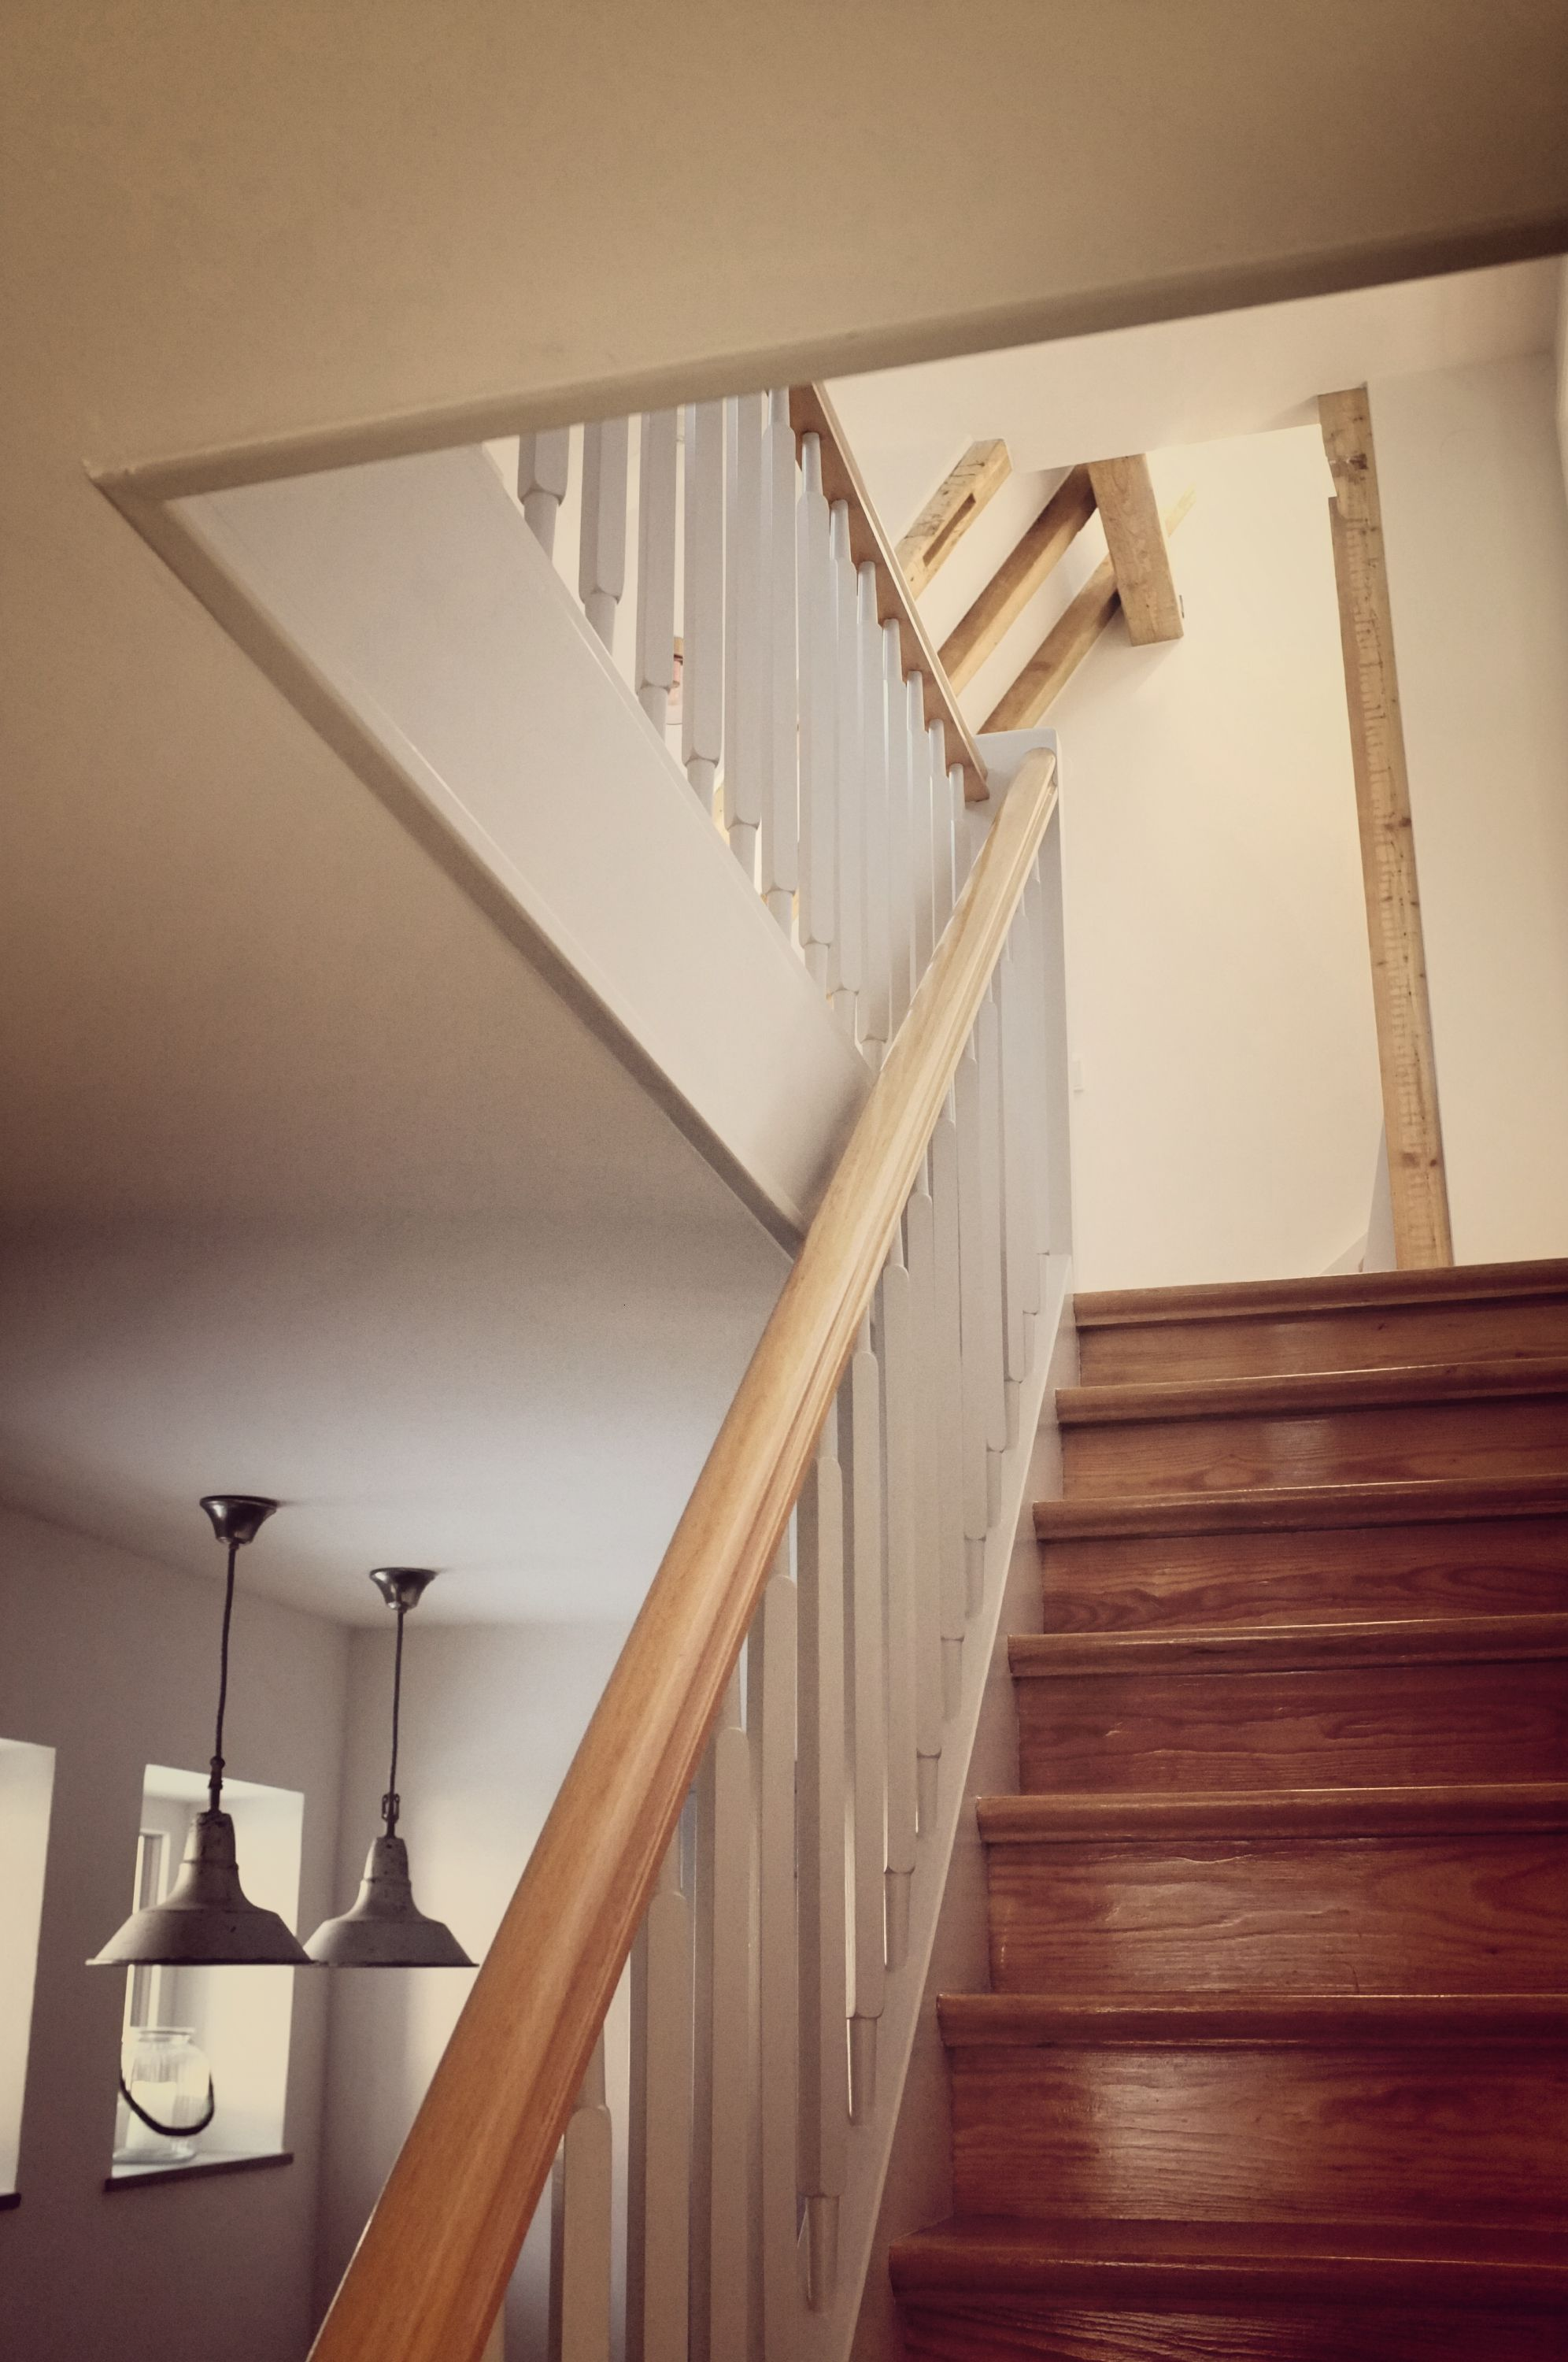 Delicieux Oakwood Stairs, 50s, Retro, Vintage Design Bannister, Vintage Designs,  Retro Vintage